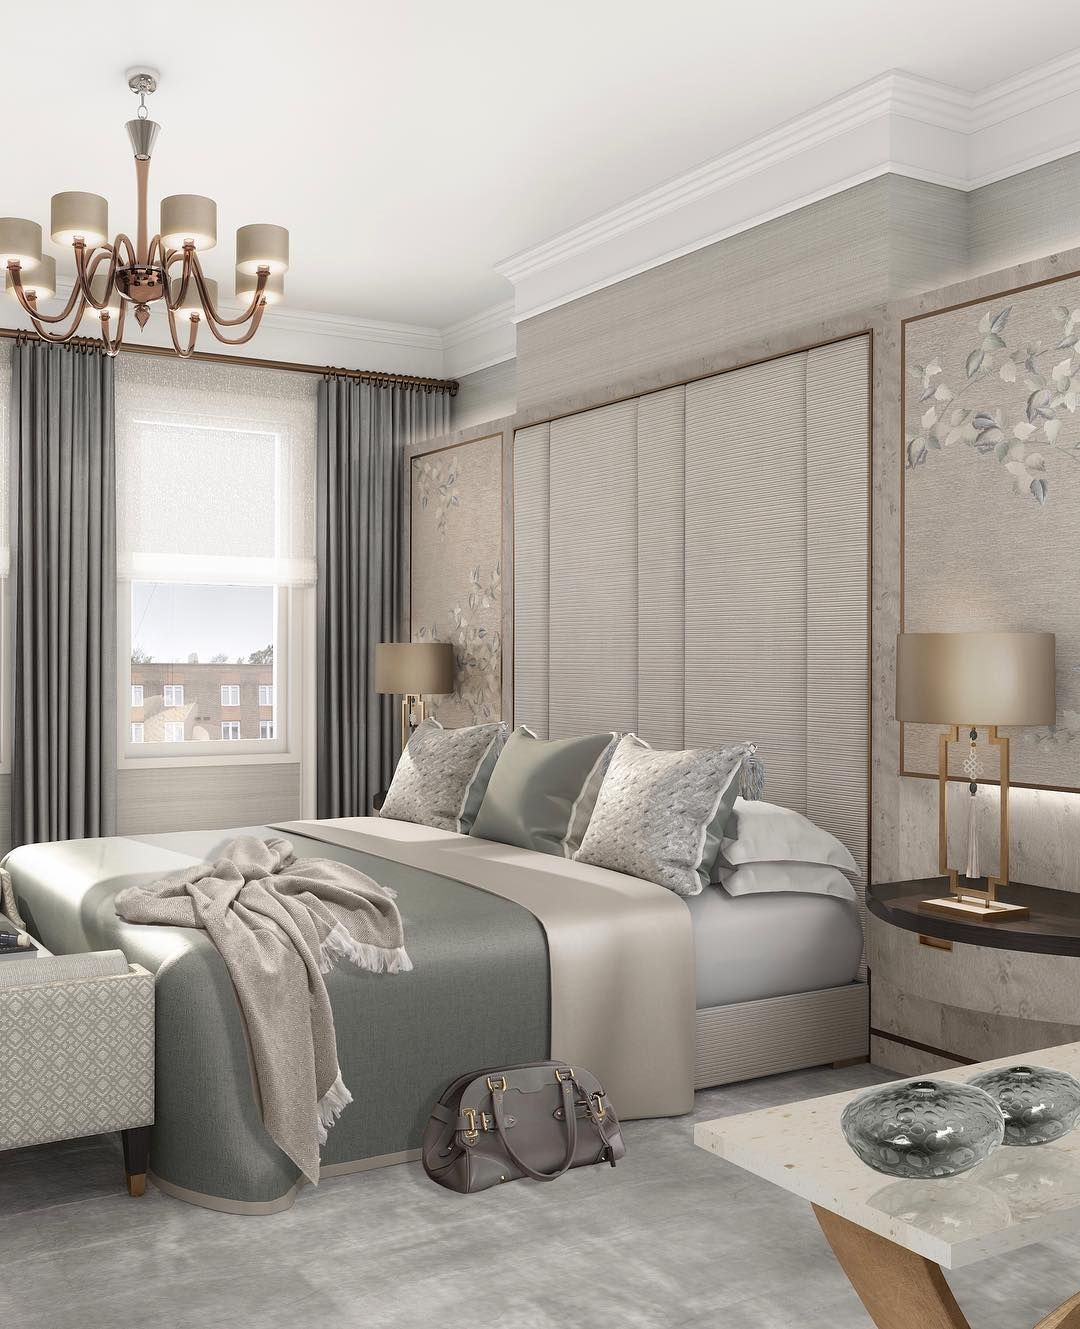 8 Luxury Bedrooms In Detail: Pin By Silviany On Classic - Bedroom In 2019